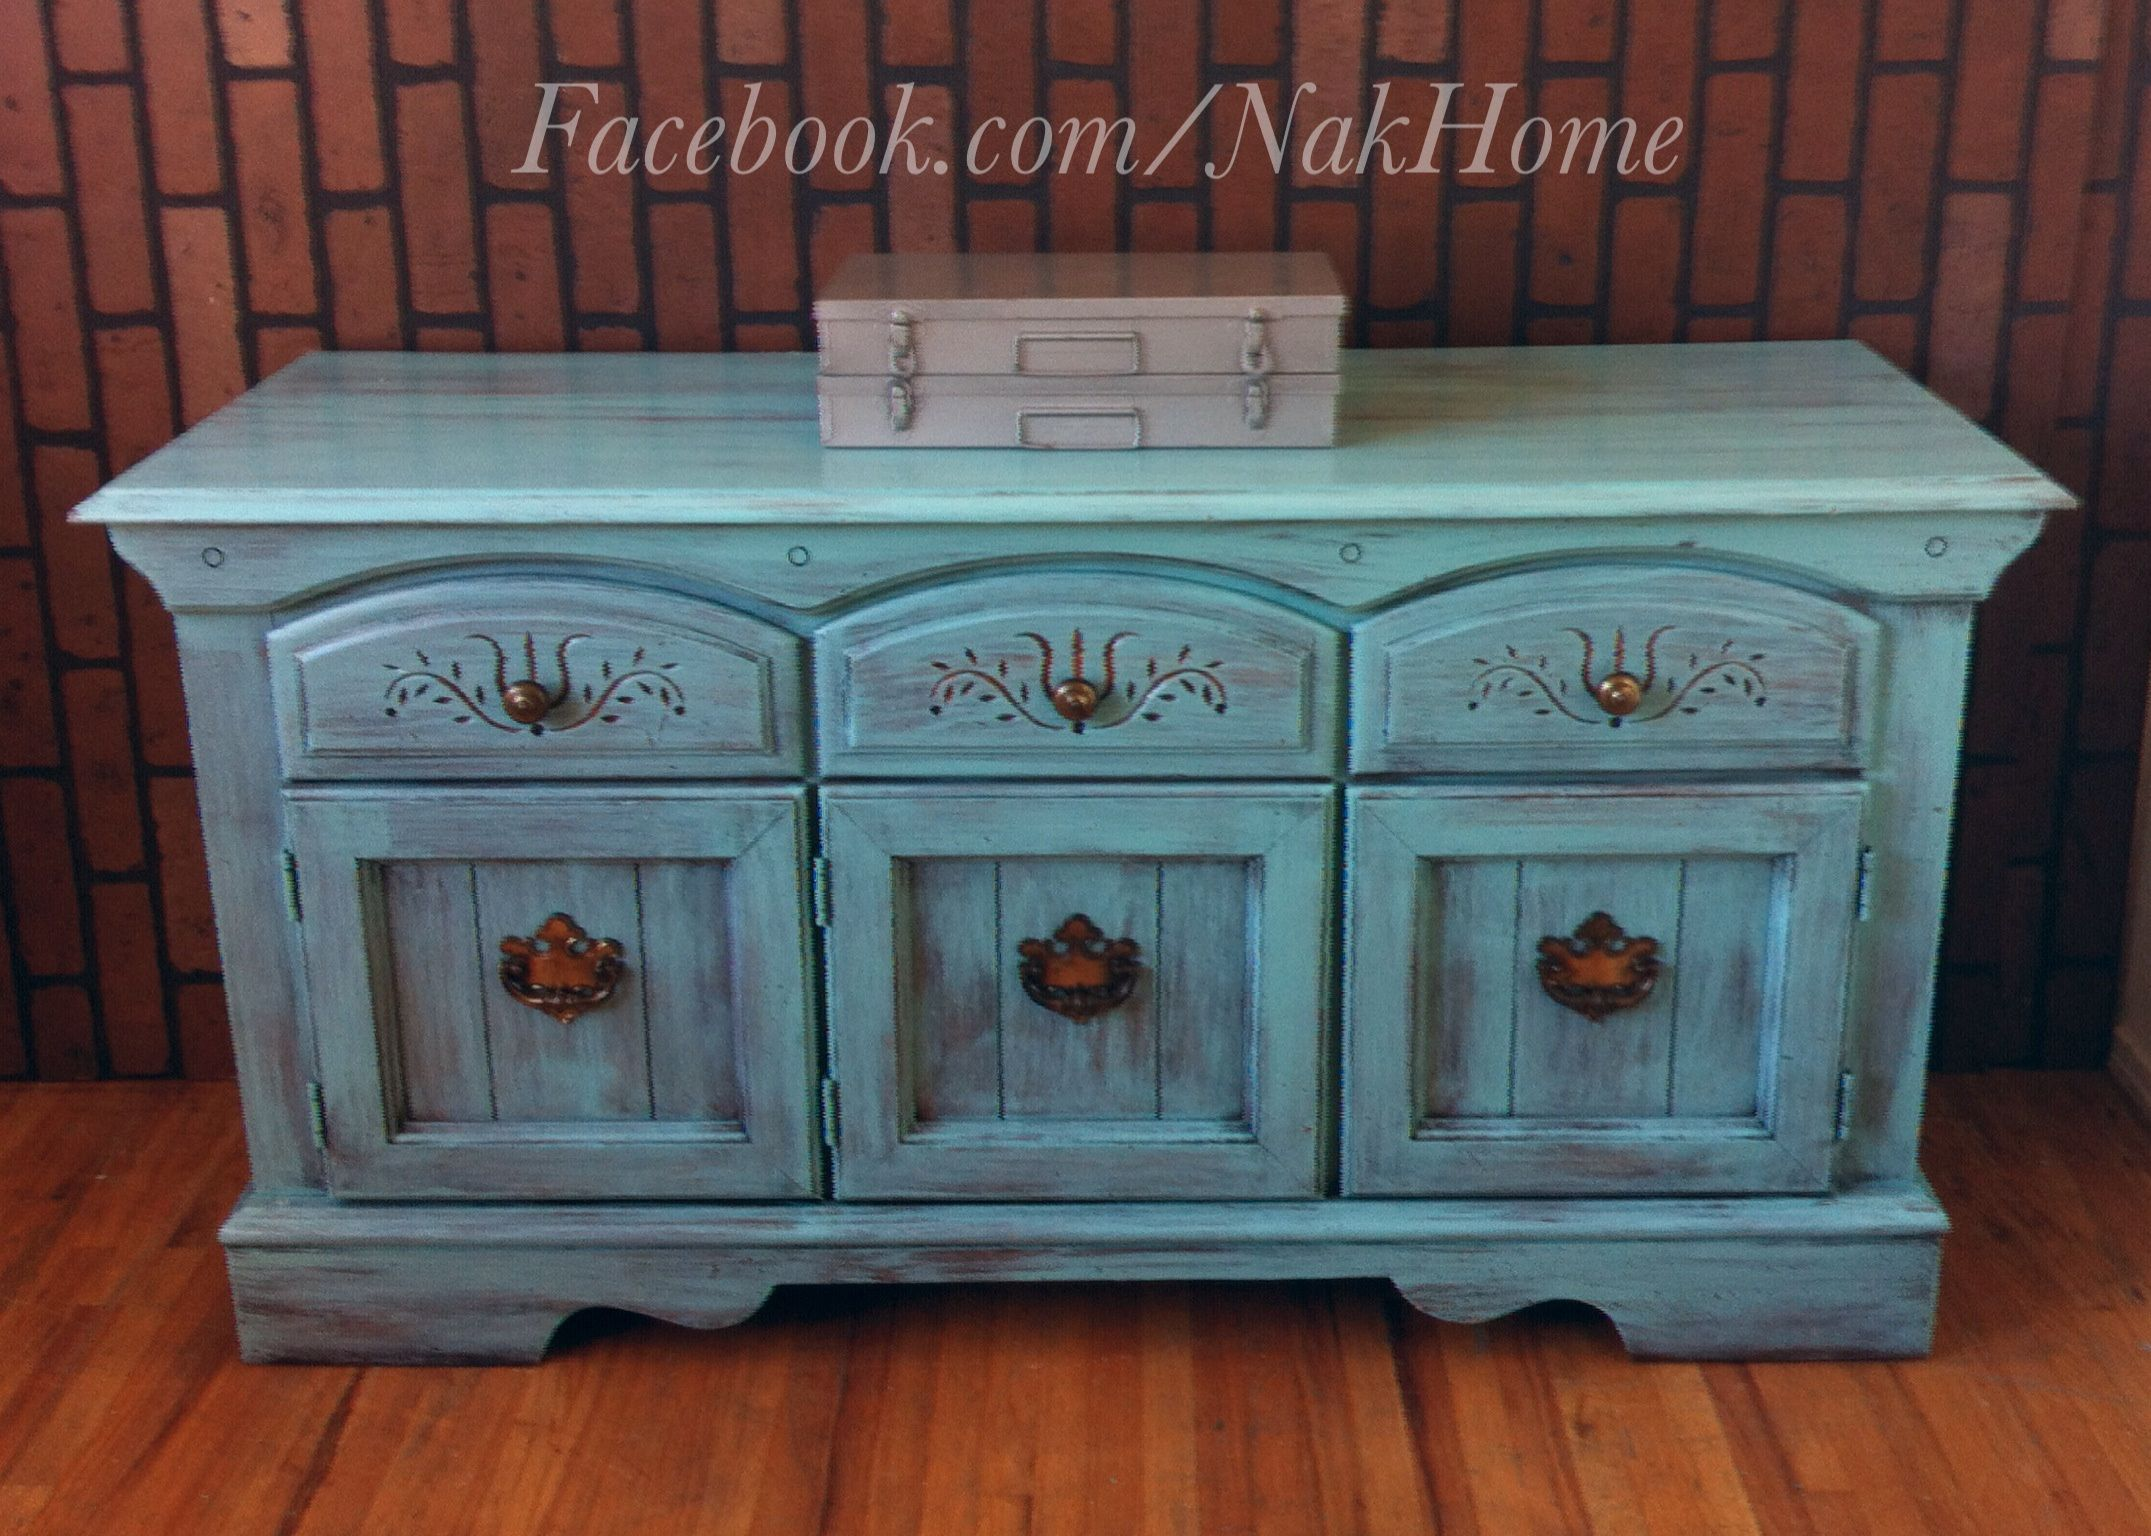 Charming Hand Painted Buffet Furniture   Best Furniture Gallery Check More At  Http://cacophonouscreations.com/hand Painted Buffet Furniture/